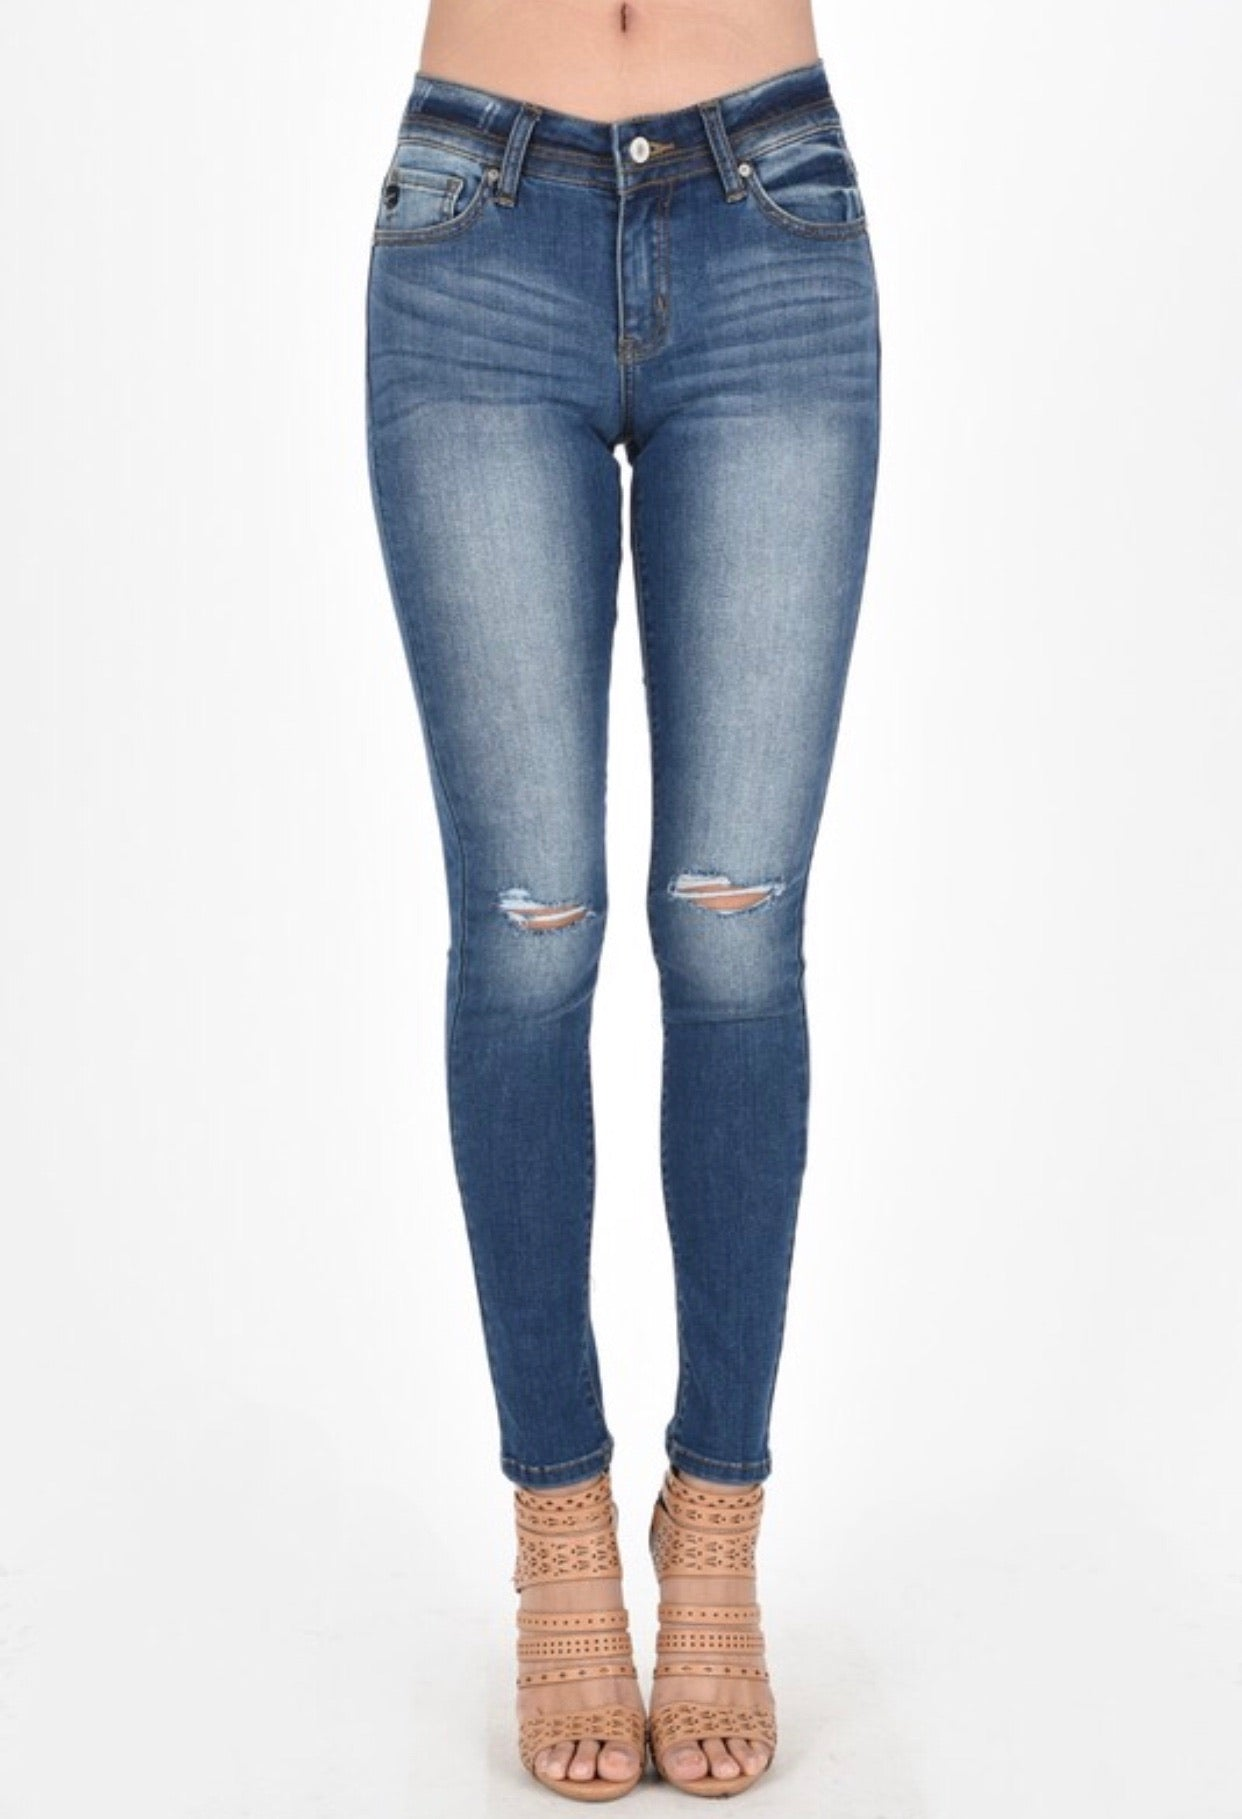 Gotta Get Next To You Distressed Knee Skinnies - Curvy